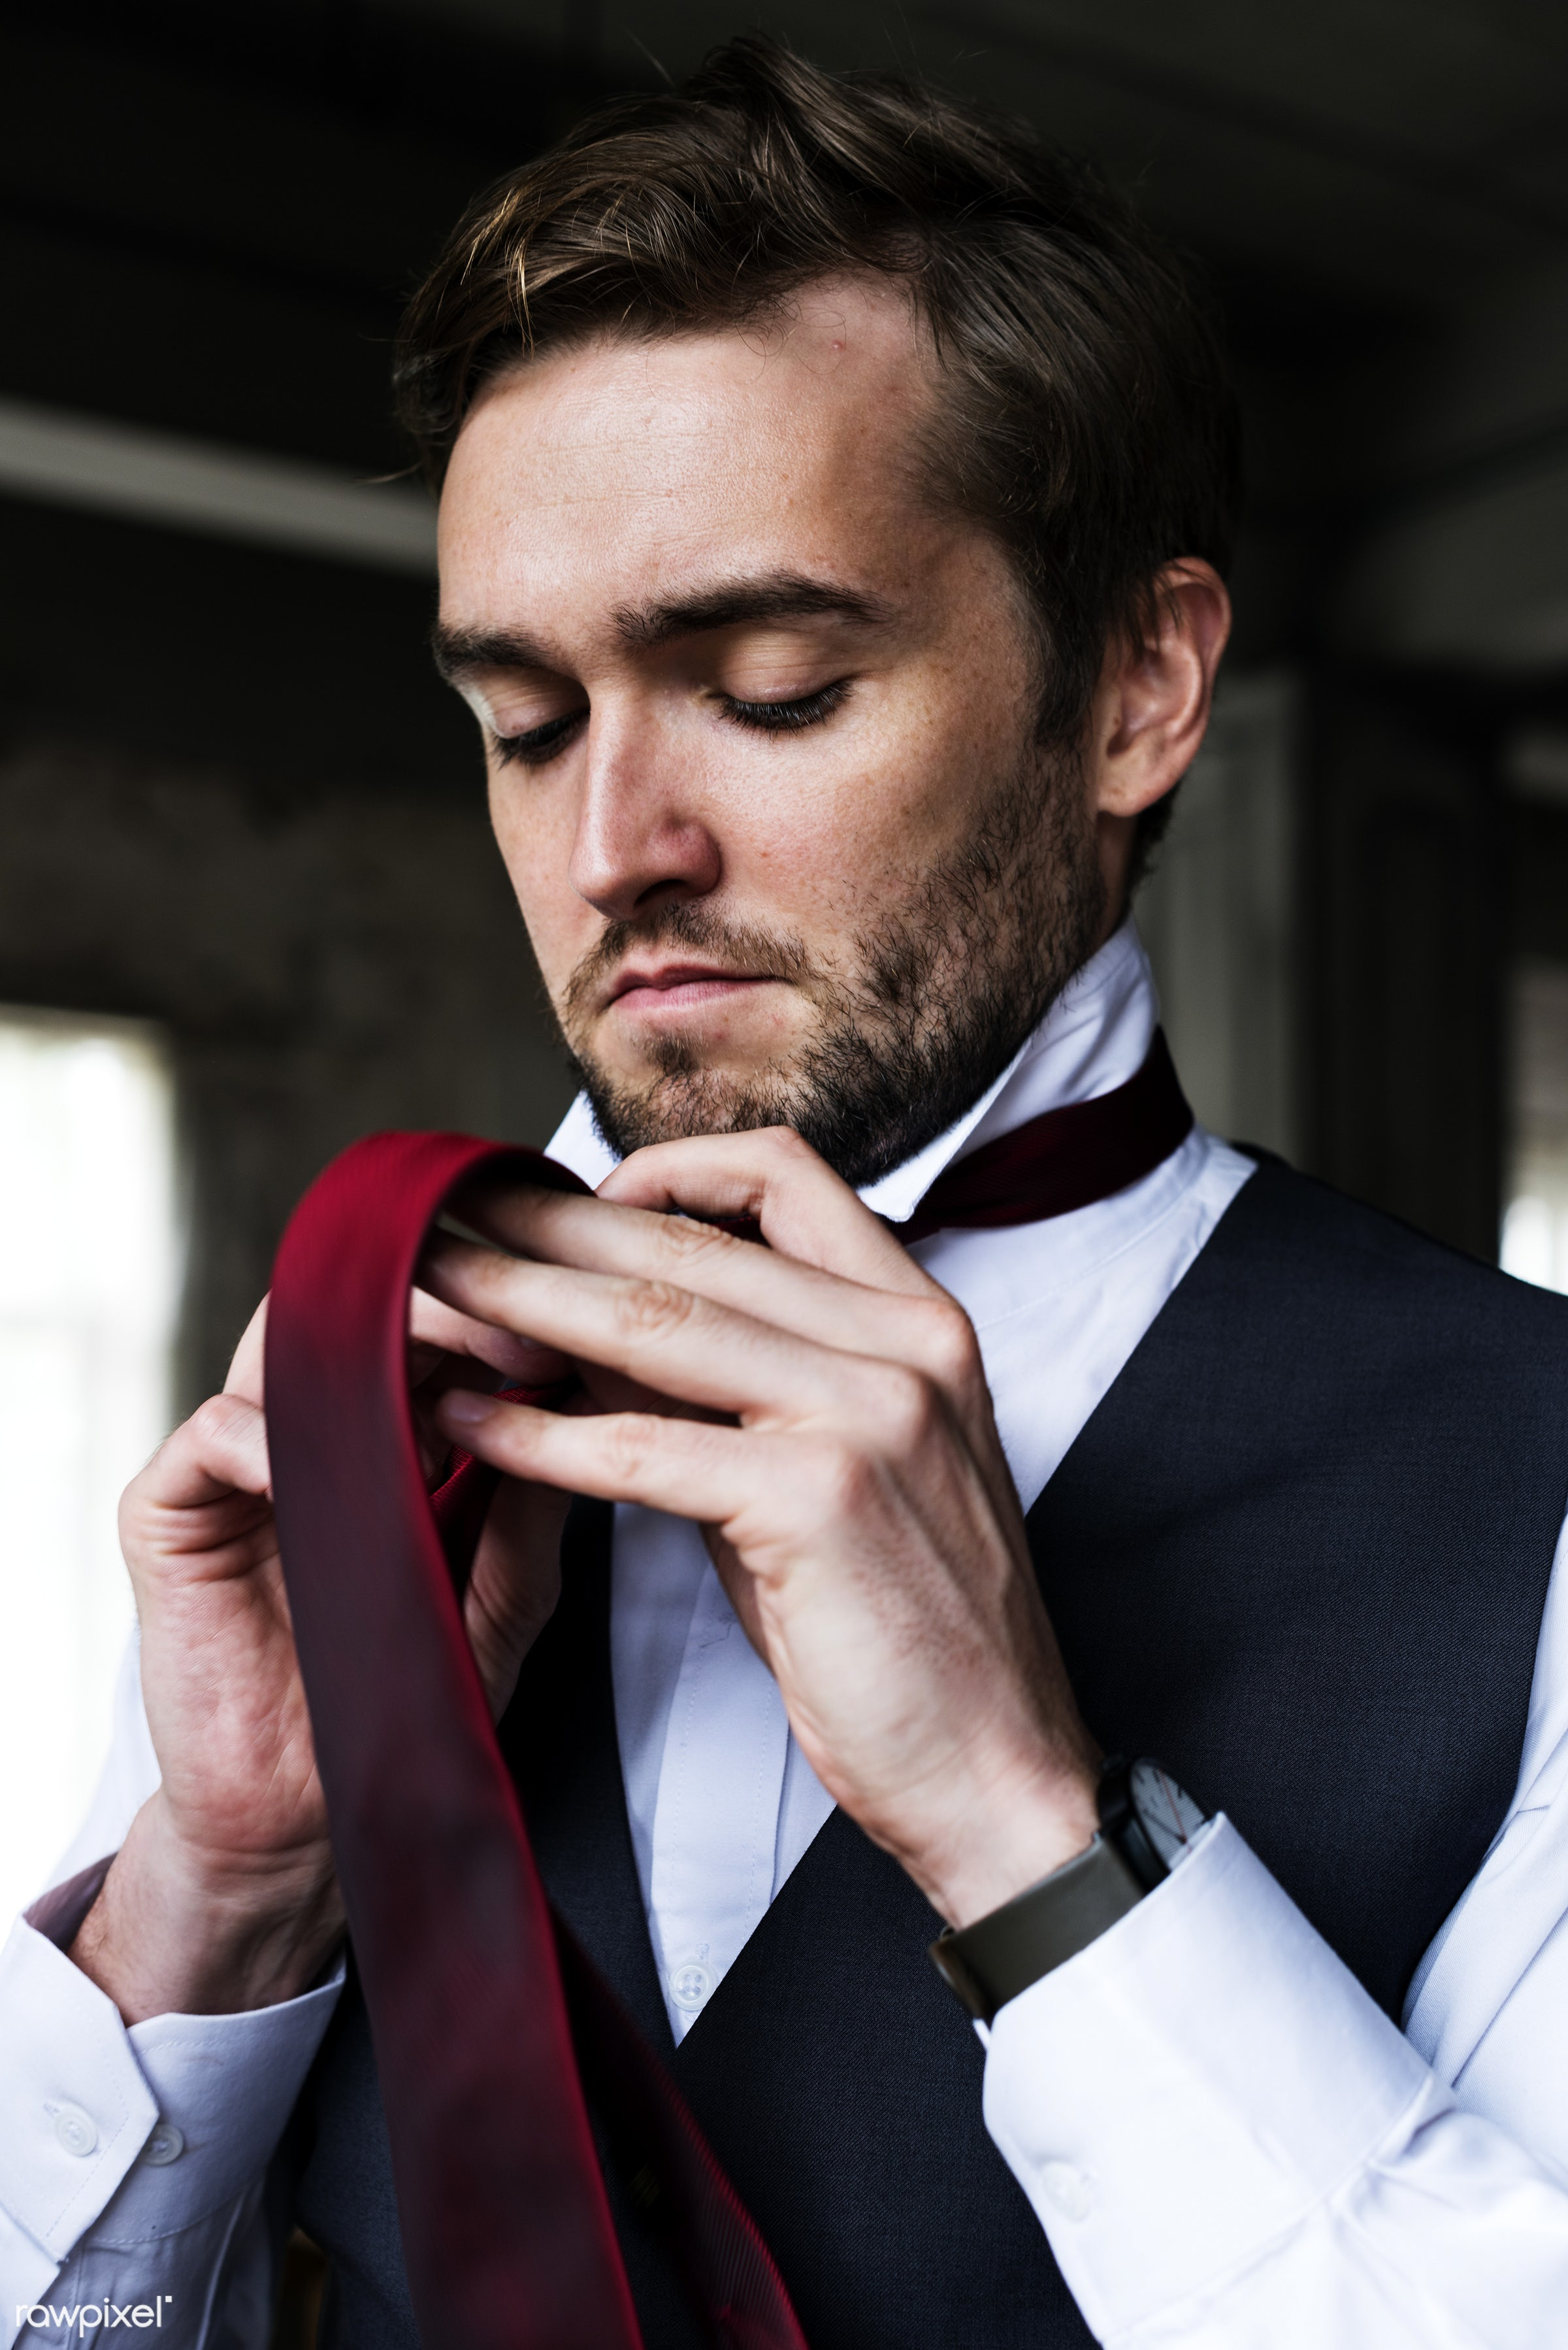 person, tie, dress up, occasion, people, caucasian, love, glamour, happy, attractive, gown, men, cheerful, marry, man, vest...